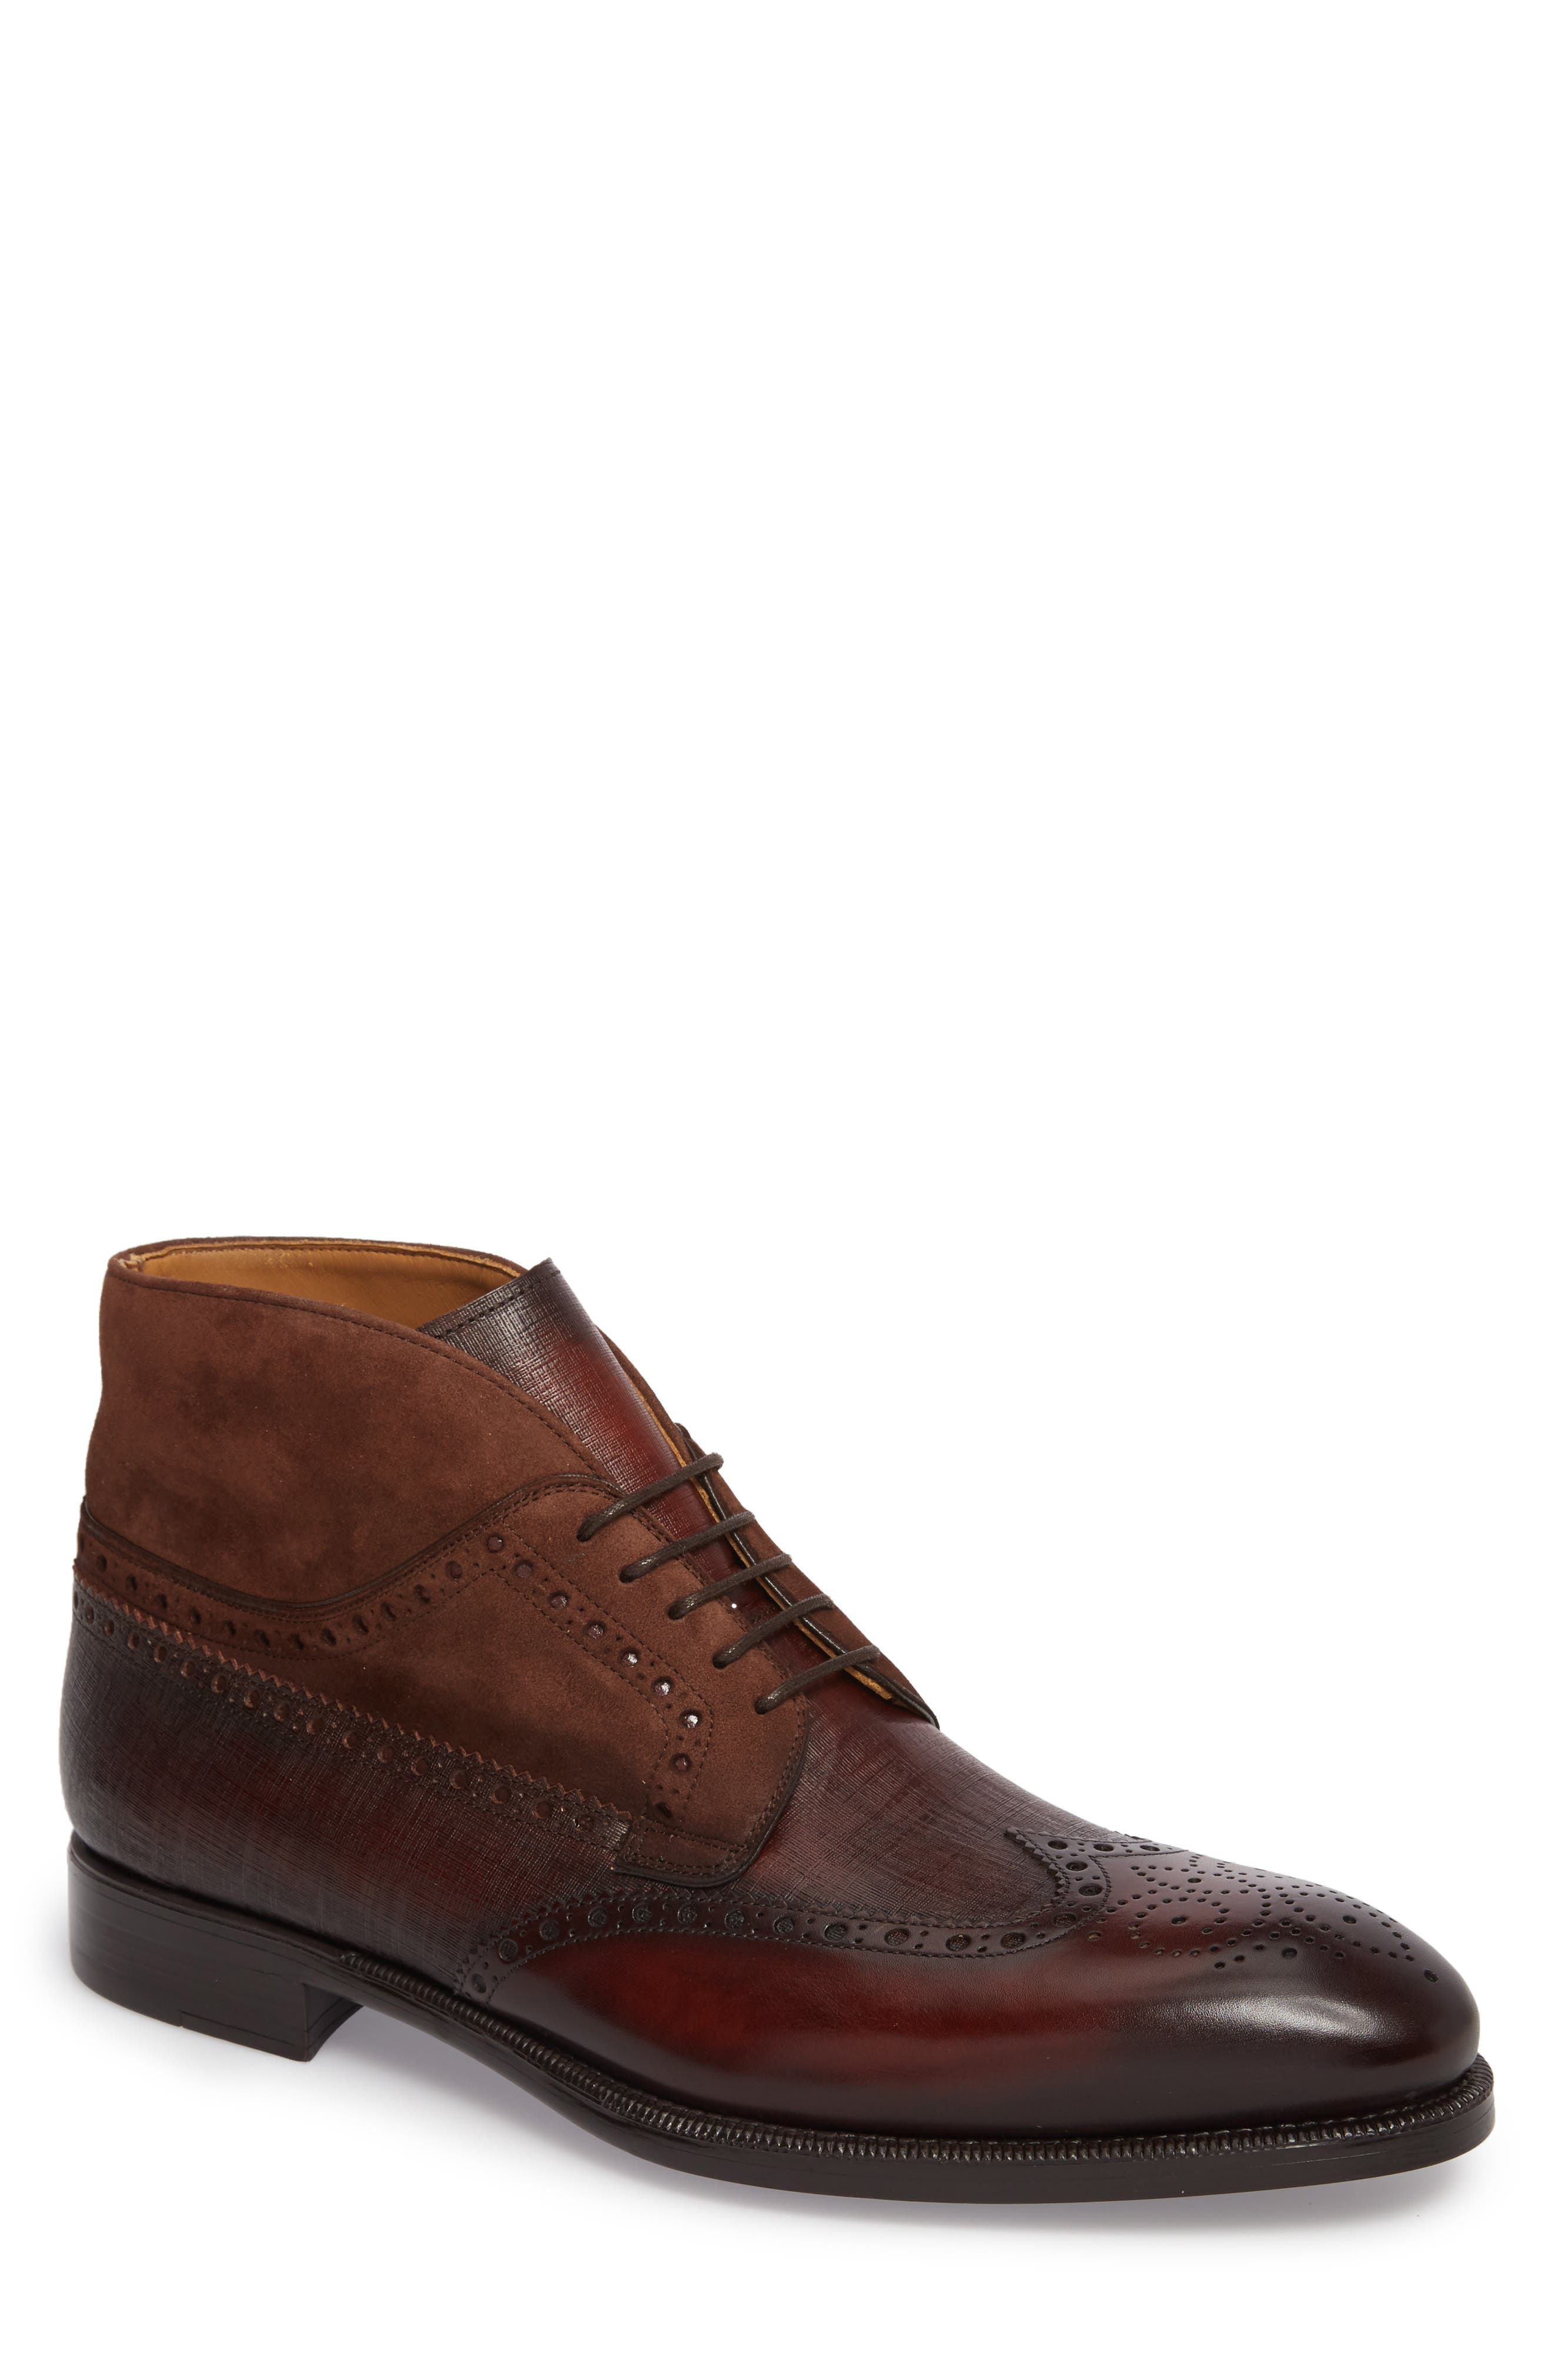 Saxon Wingtip Boot,                             Main thumbnail 1, color,                             Mid-Brown Leather